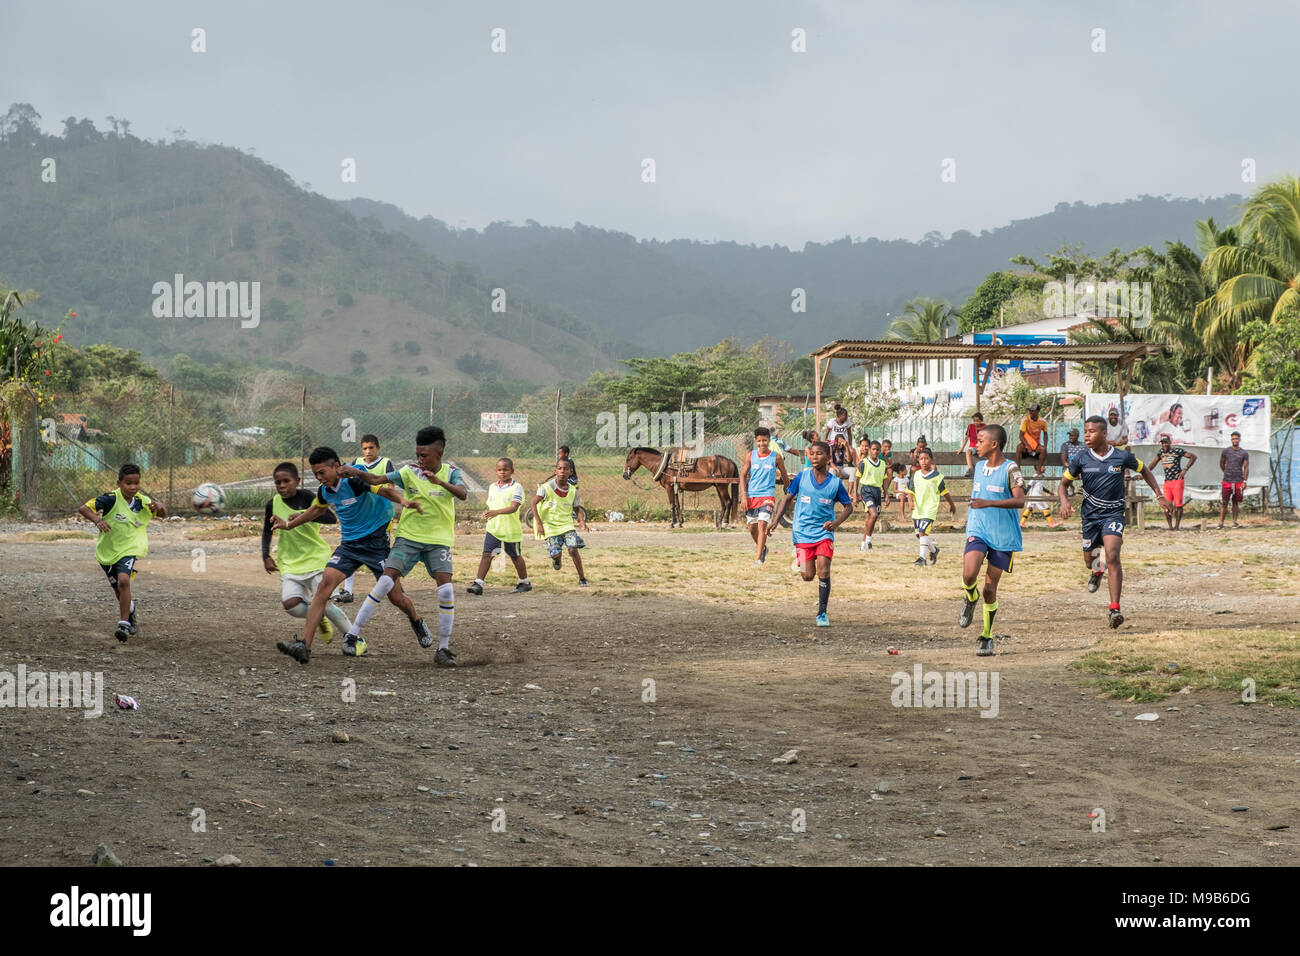 Capurgana, Colombia - march 2018: Children playing soccer on the street in village center of Capurgana, Colombia. - Stock Image